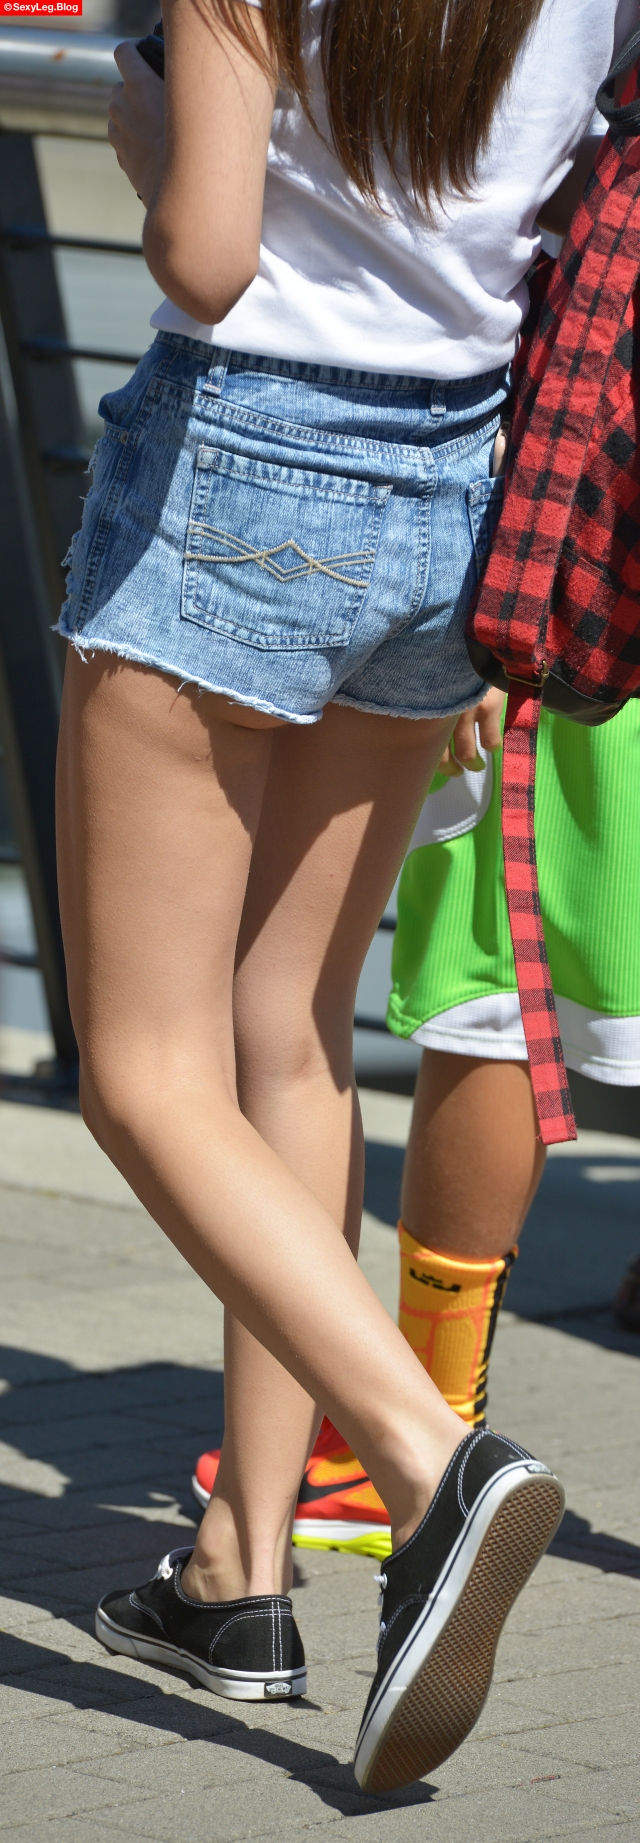 Candid Legs Showing Butt Cheeks and Hair